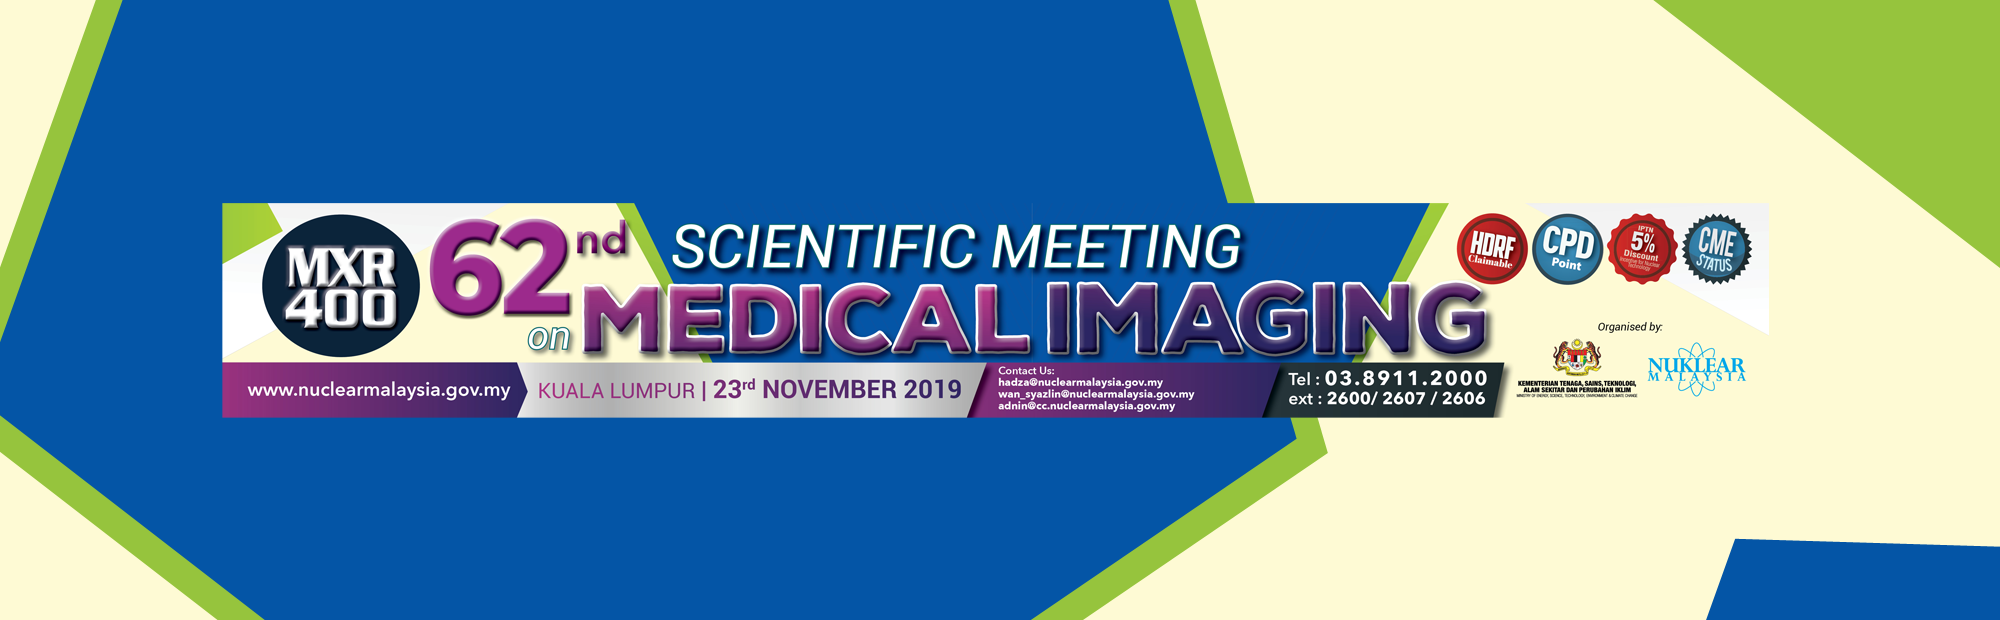 62ND SCIENTIFIC MEETING ON MEDICAL IMAGING